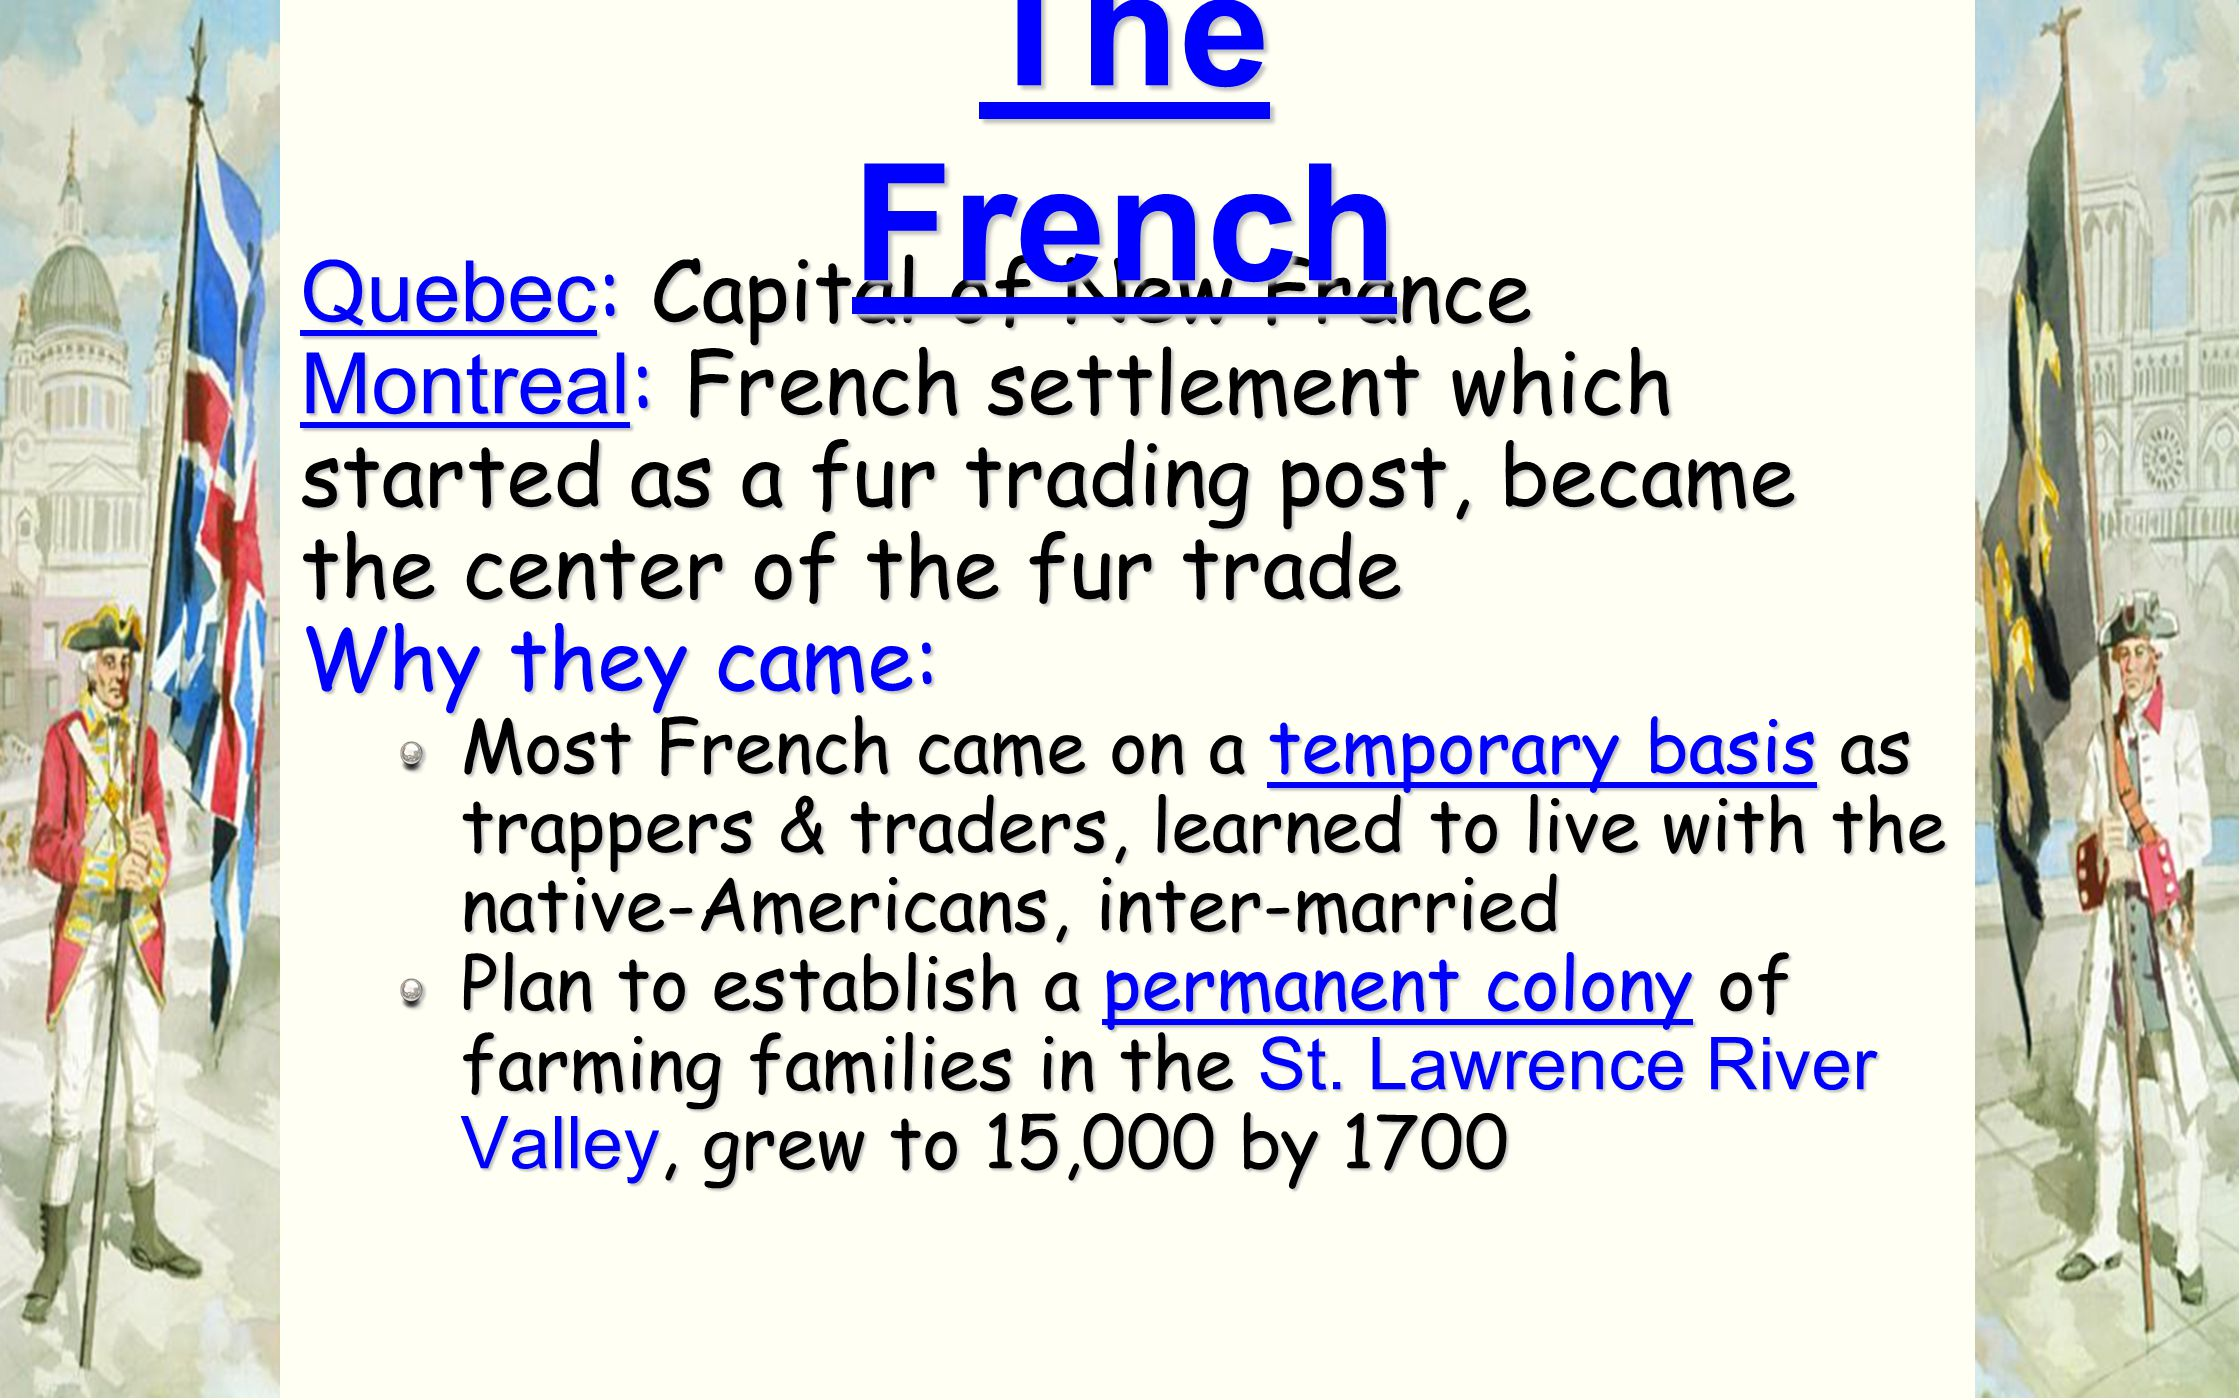 The French Quebec: Capital of New France